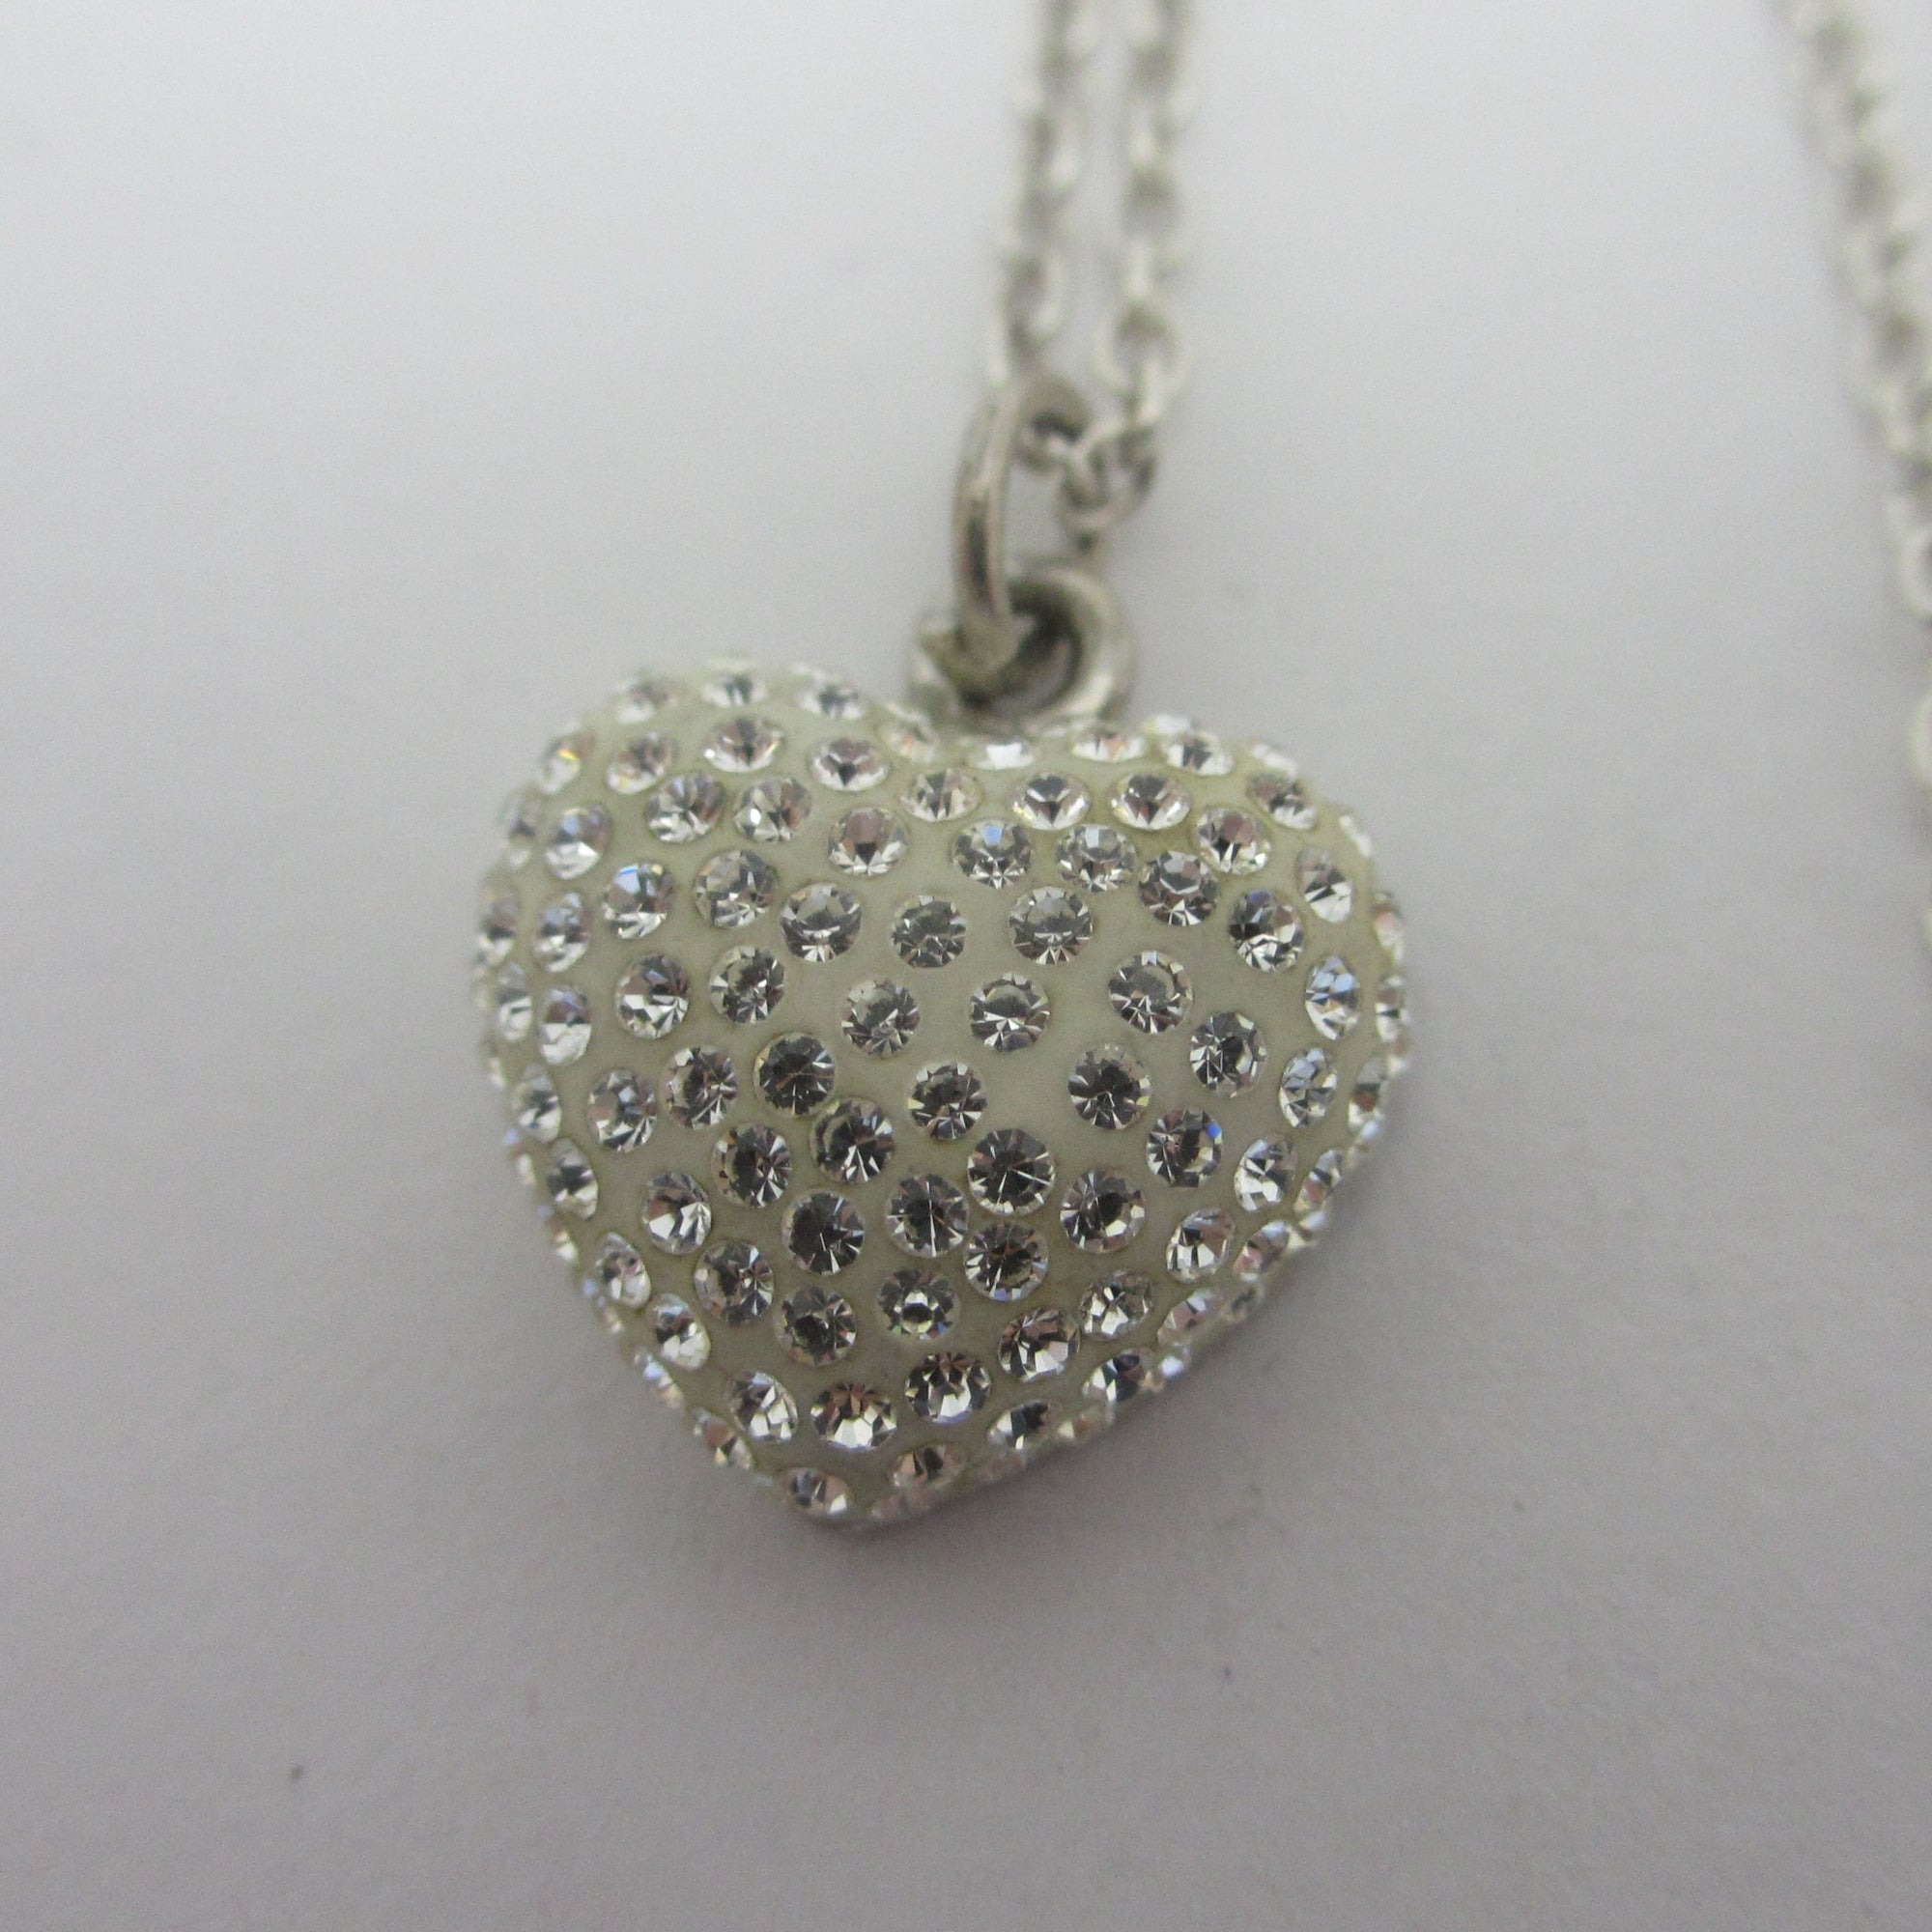 Sparkly Heart Pendant Sterling Silver Chain Necklace Vintage c1980